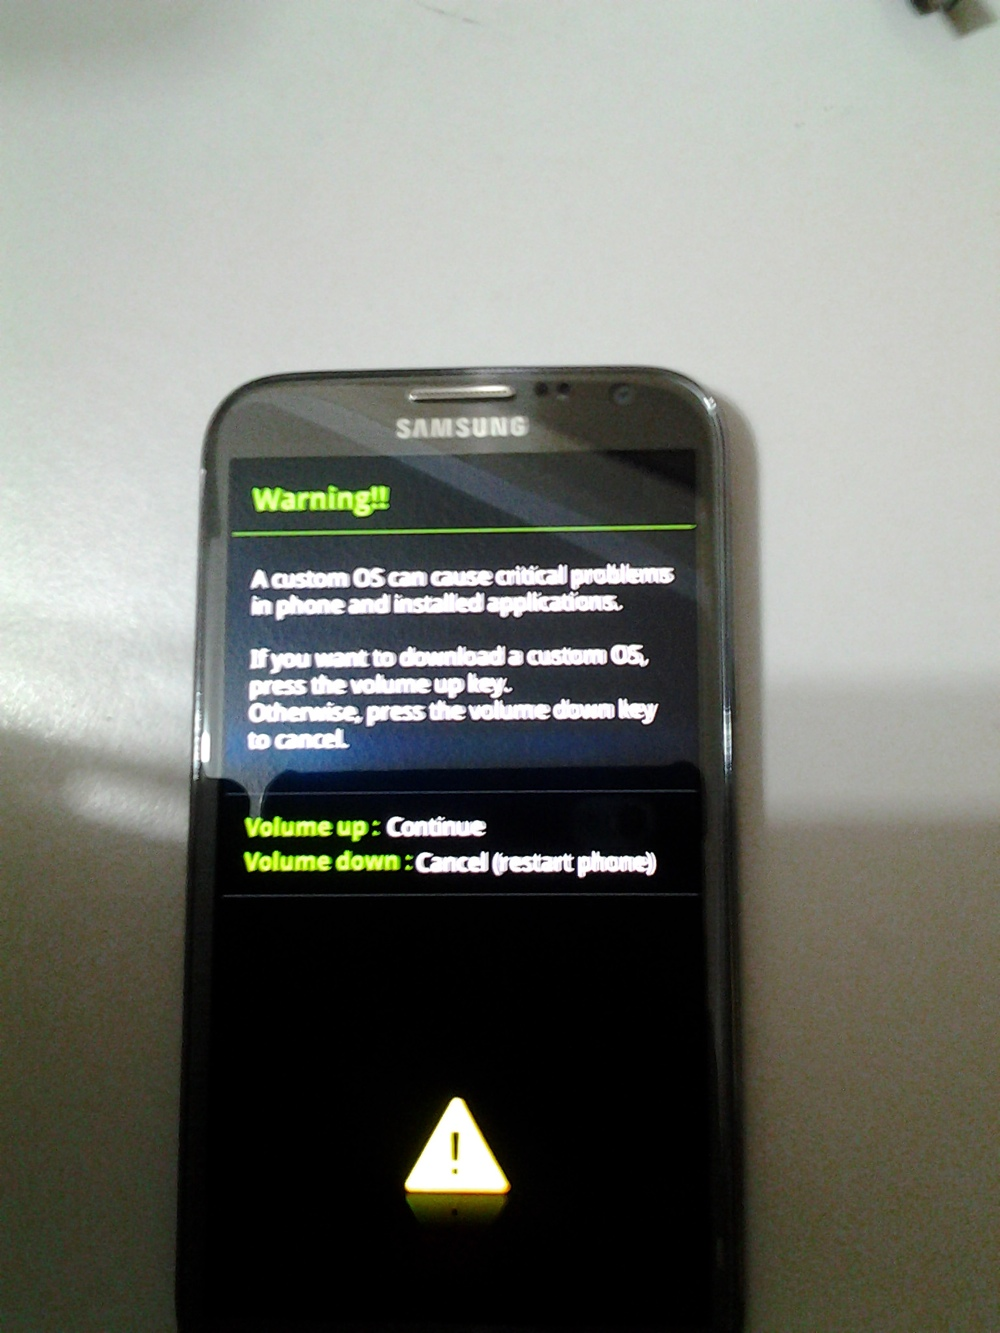 Galaxy Note 2 : Rooting, install CWM and Flashing official